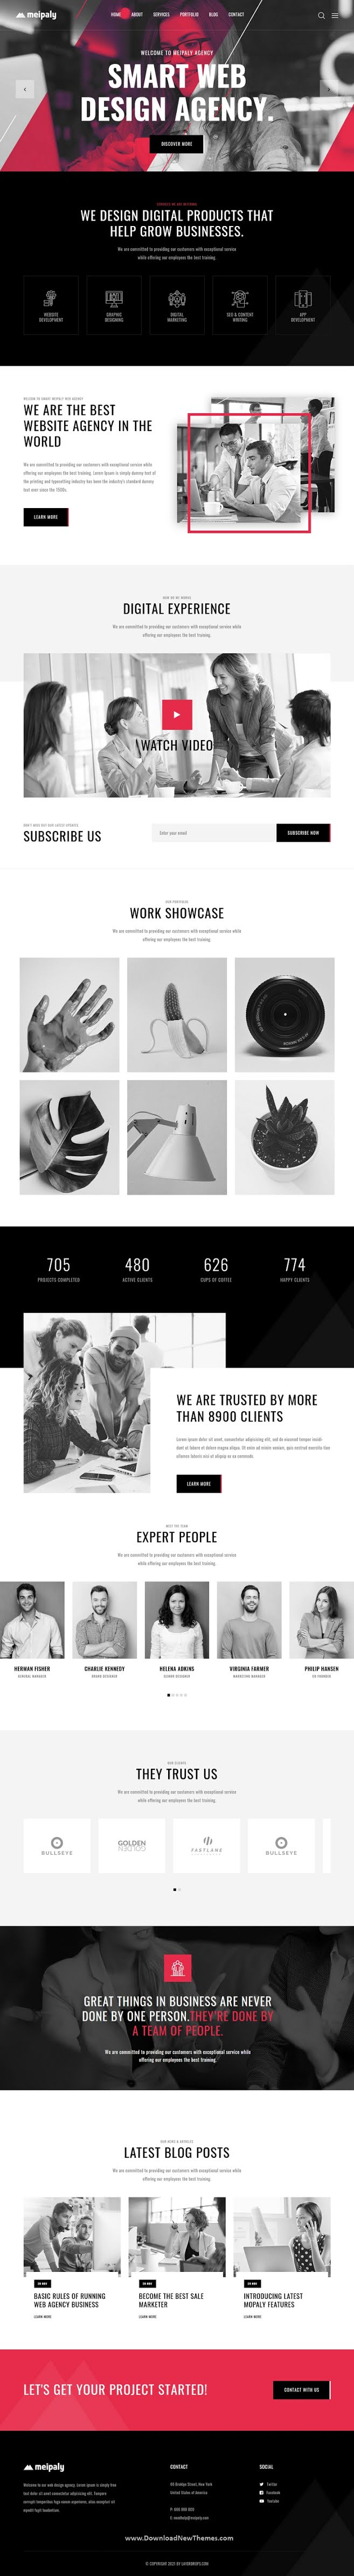 Digital Services Agency Website Template